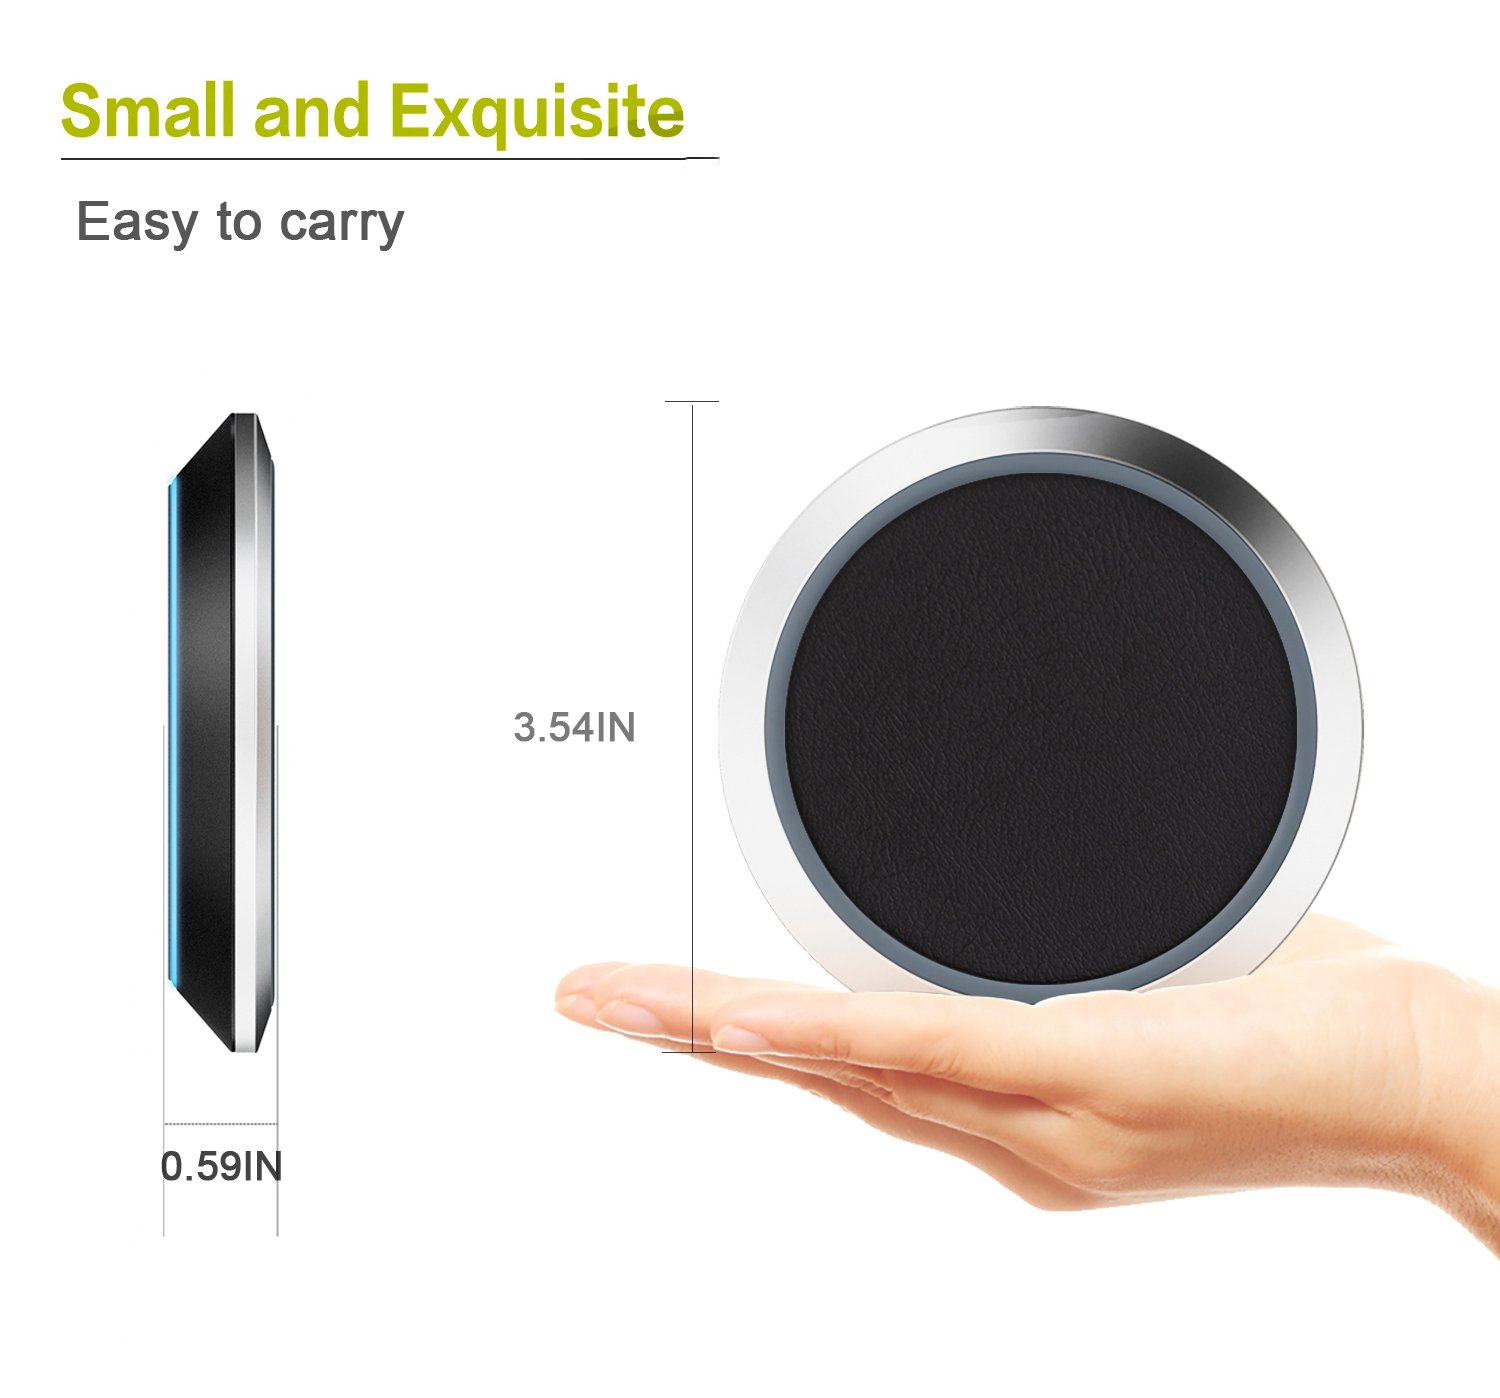 Us Area Phone Code 718%0A Amazon com  Fast Wireless Charging Pad  Kcpella Portable Qi Certified Fast  Wireless Cell Phone Charger   W for iPhone     Plus X  Samsung Galaxy S  S     S